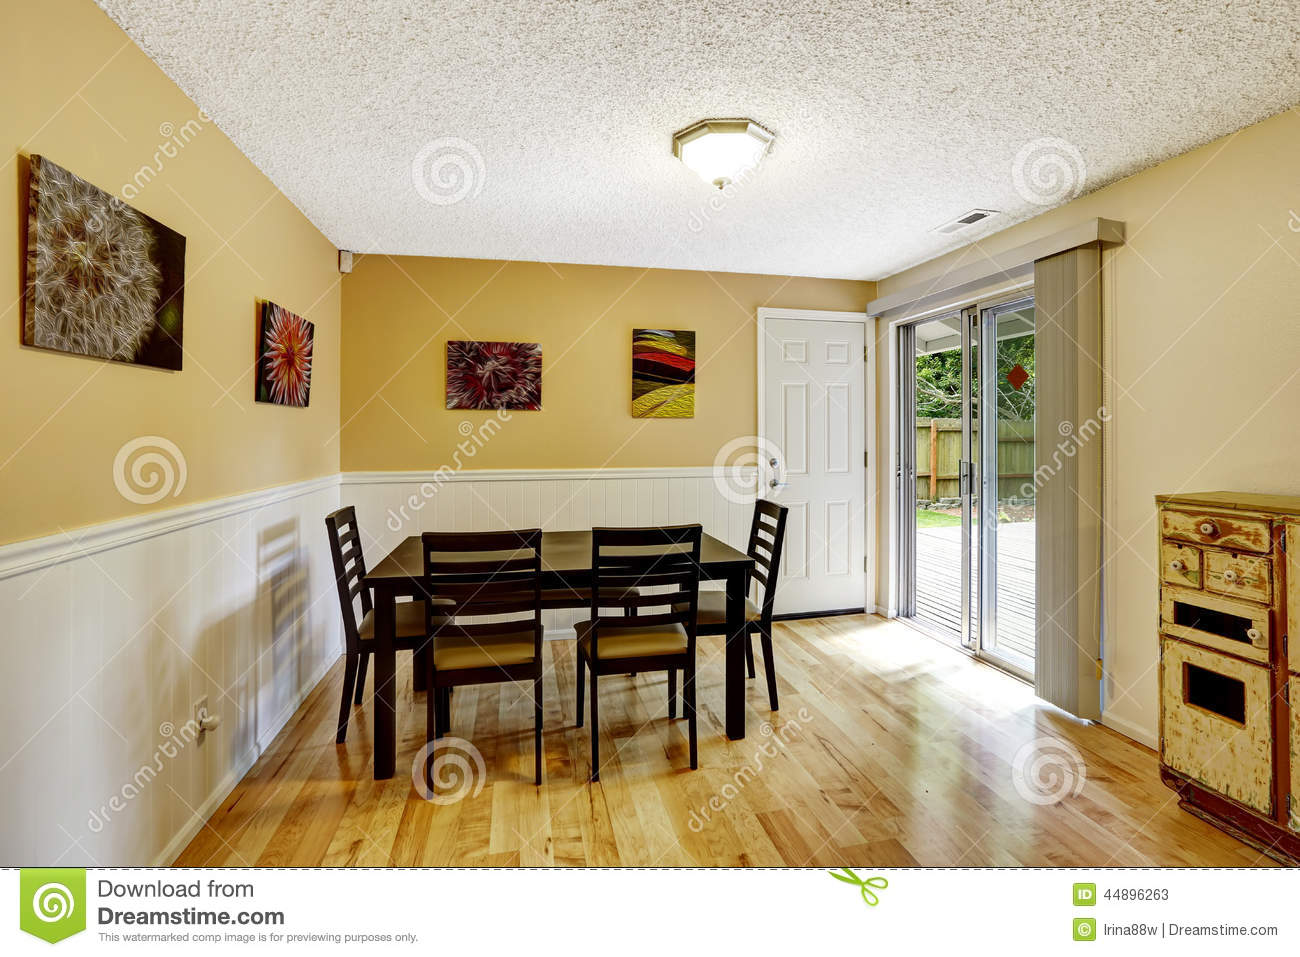 Dining Room With Exit To Backyard Patio Area Stock Photo